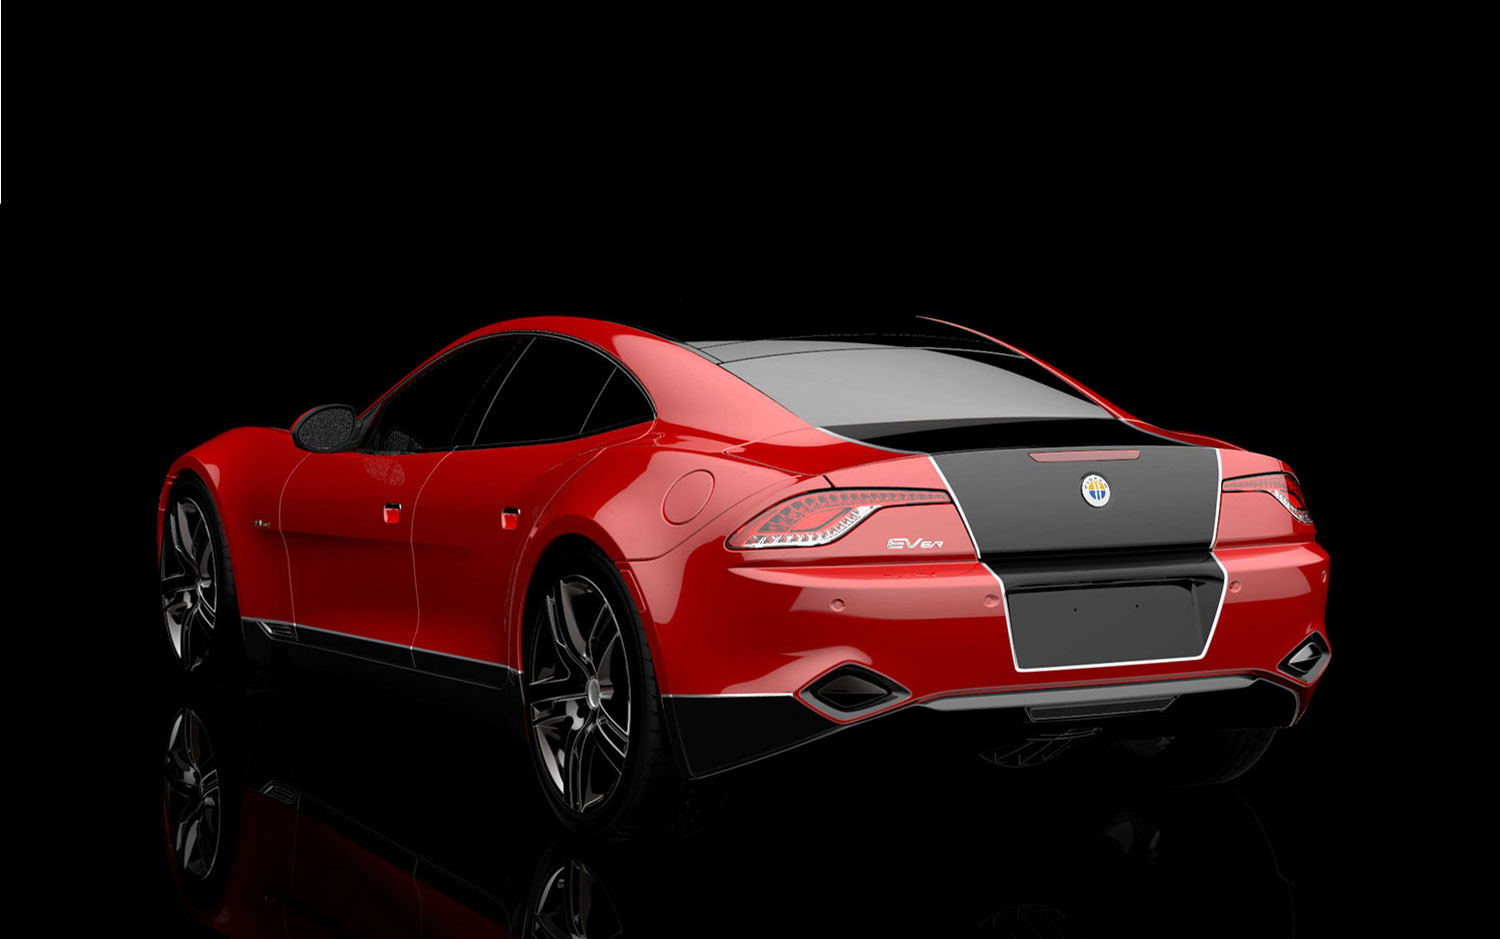 Cars Model 2013 2014: Concept Fisker Karma